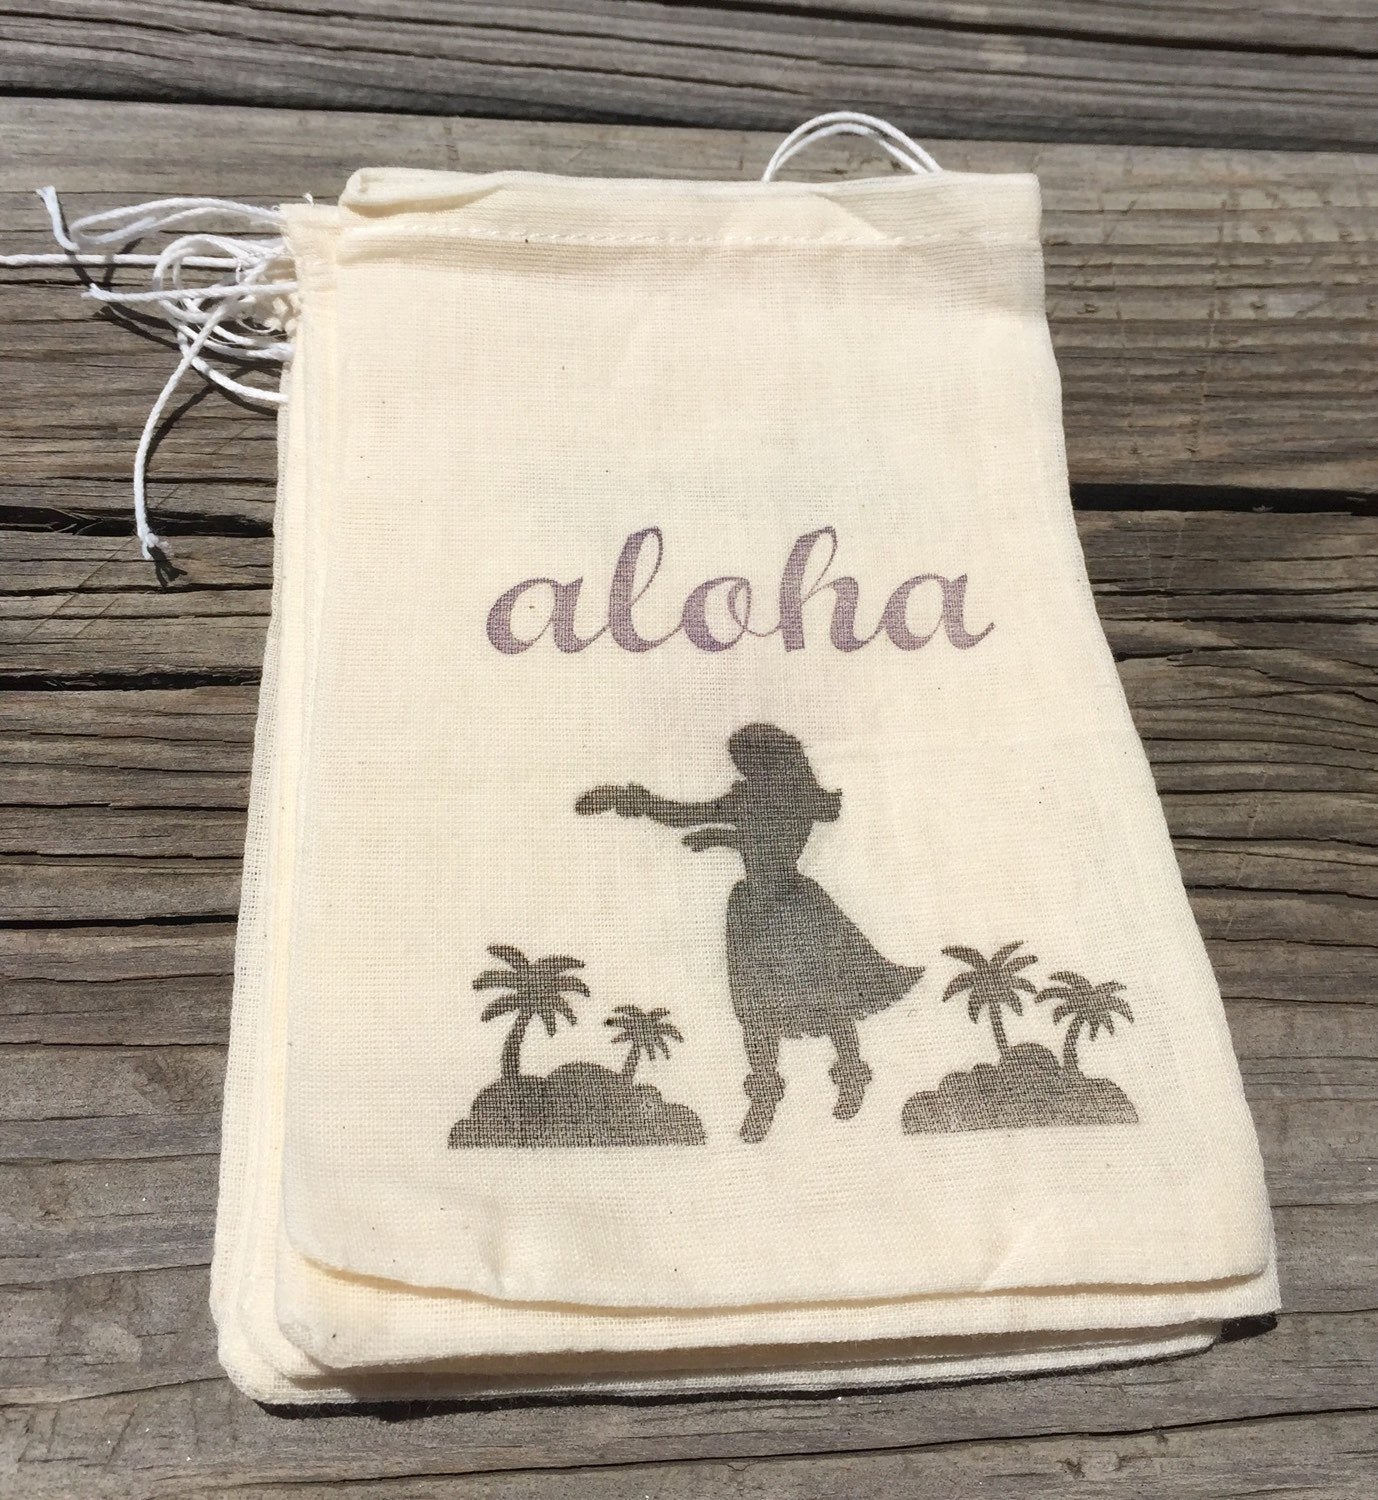 10 Hawaiian Favor Bags, Aloha favor bags, hula girl favors, luau party favors, Hawaiian wedding, beach wedding